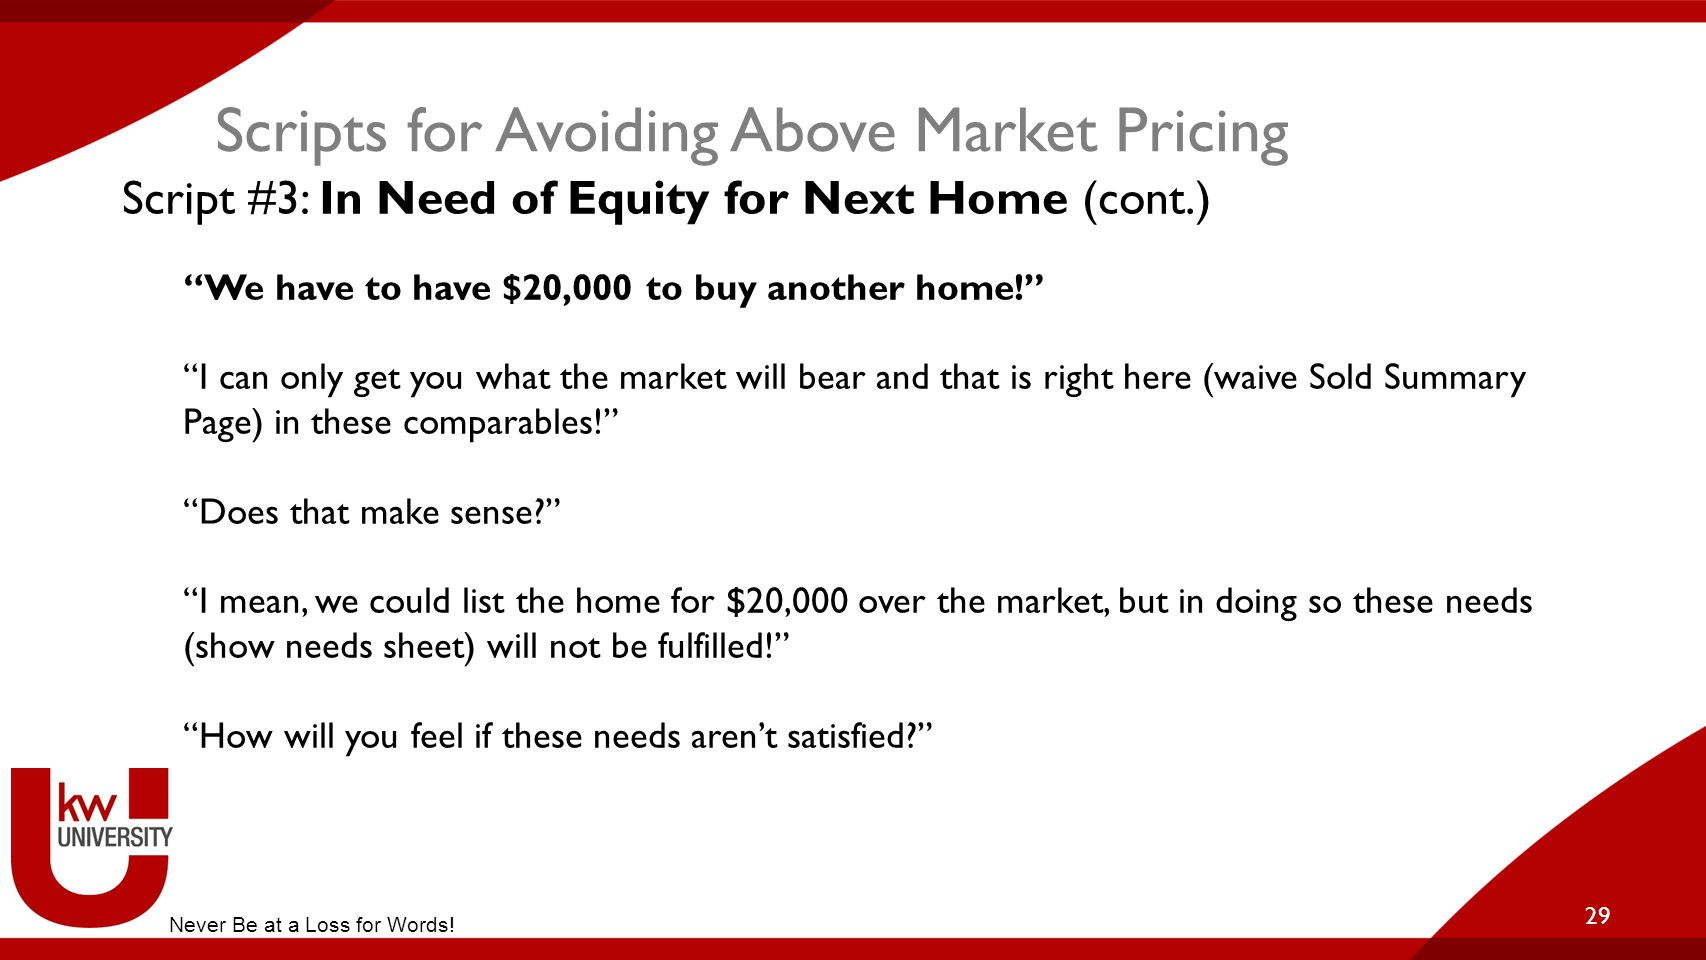 Scripts for Avoiding Above Market Pricing